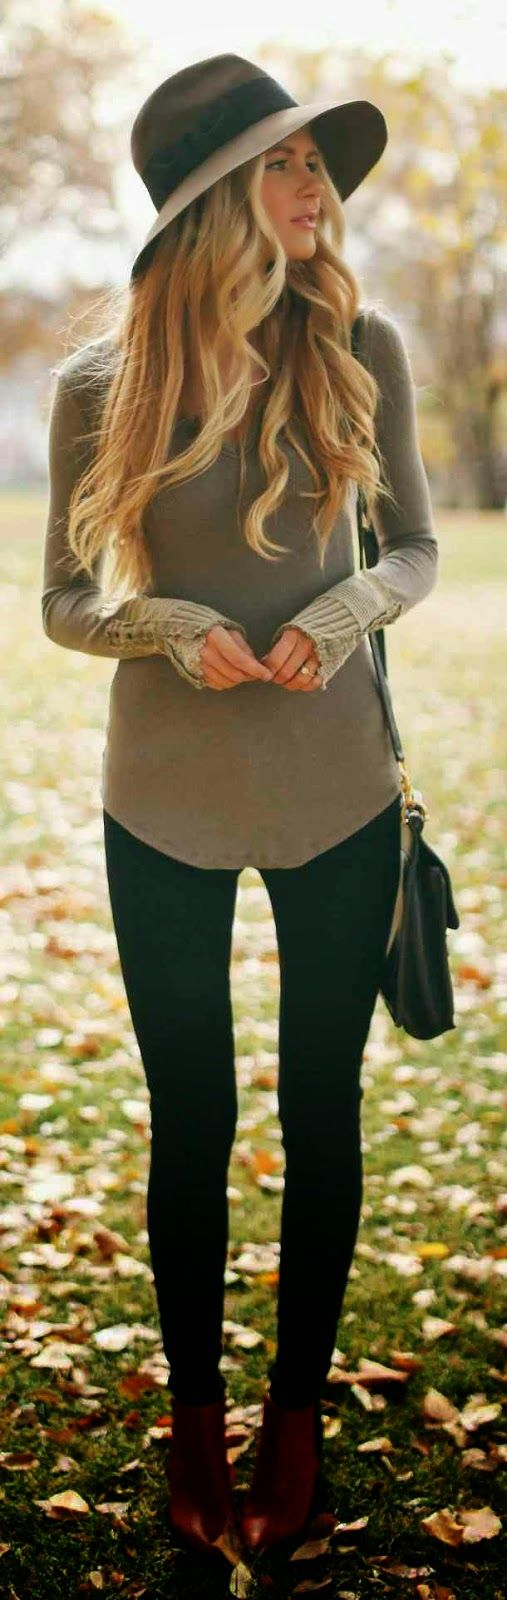 Can't pull off floppy hats like her but want this outfit for fall so simple yet gorgeous!